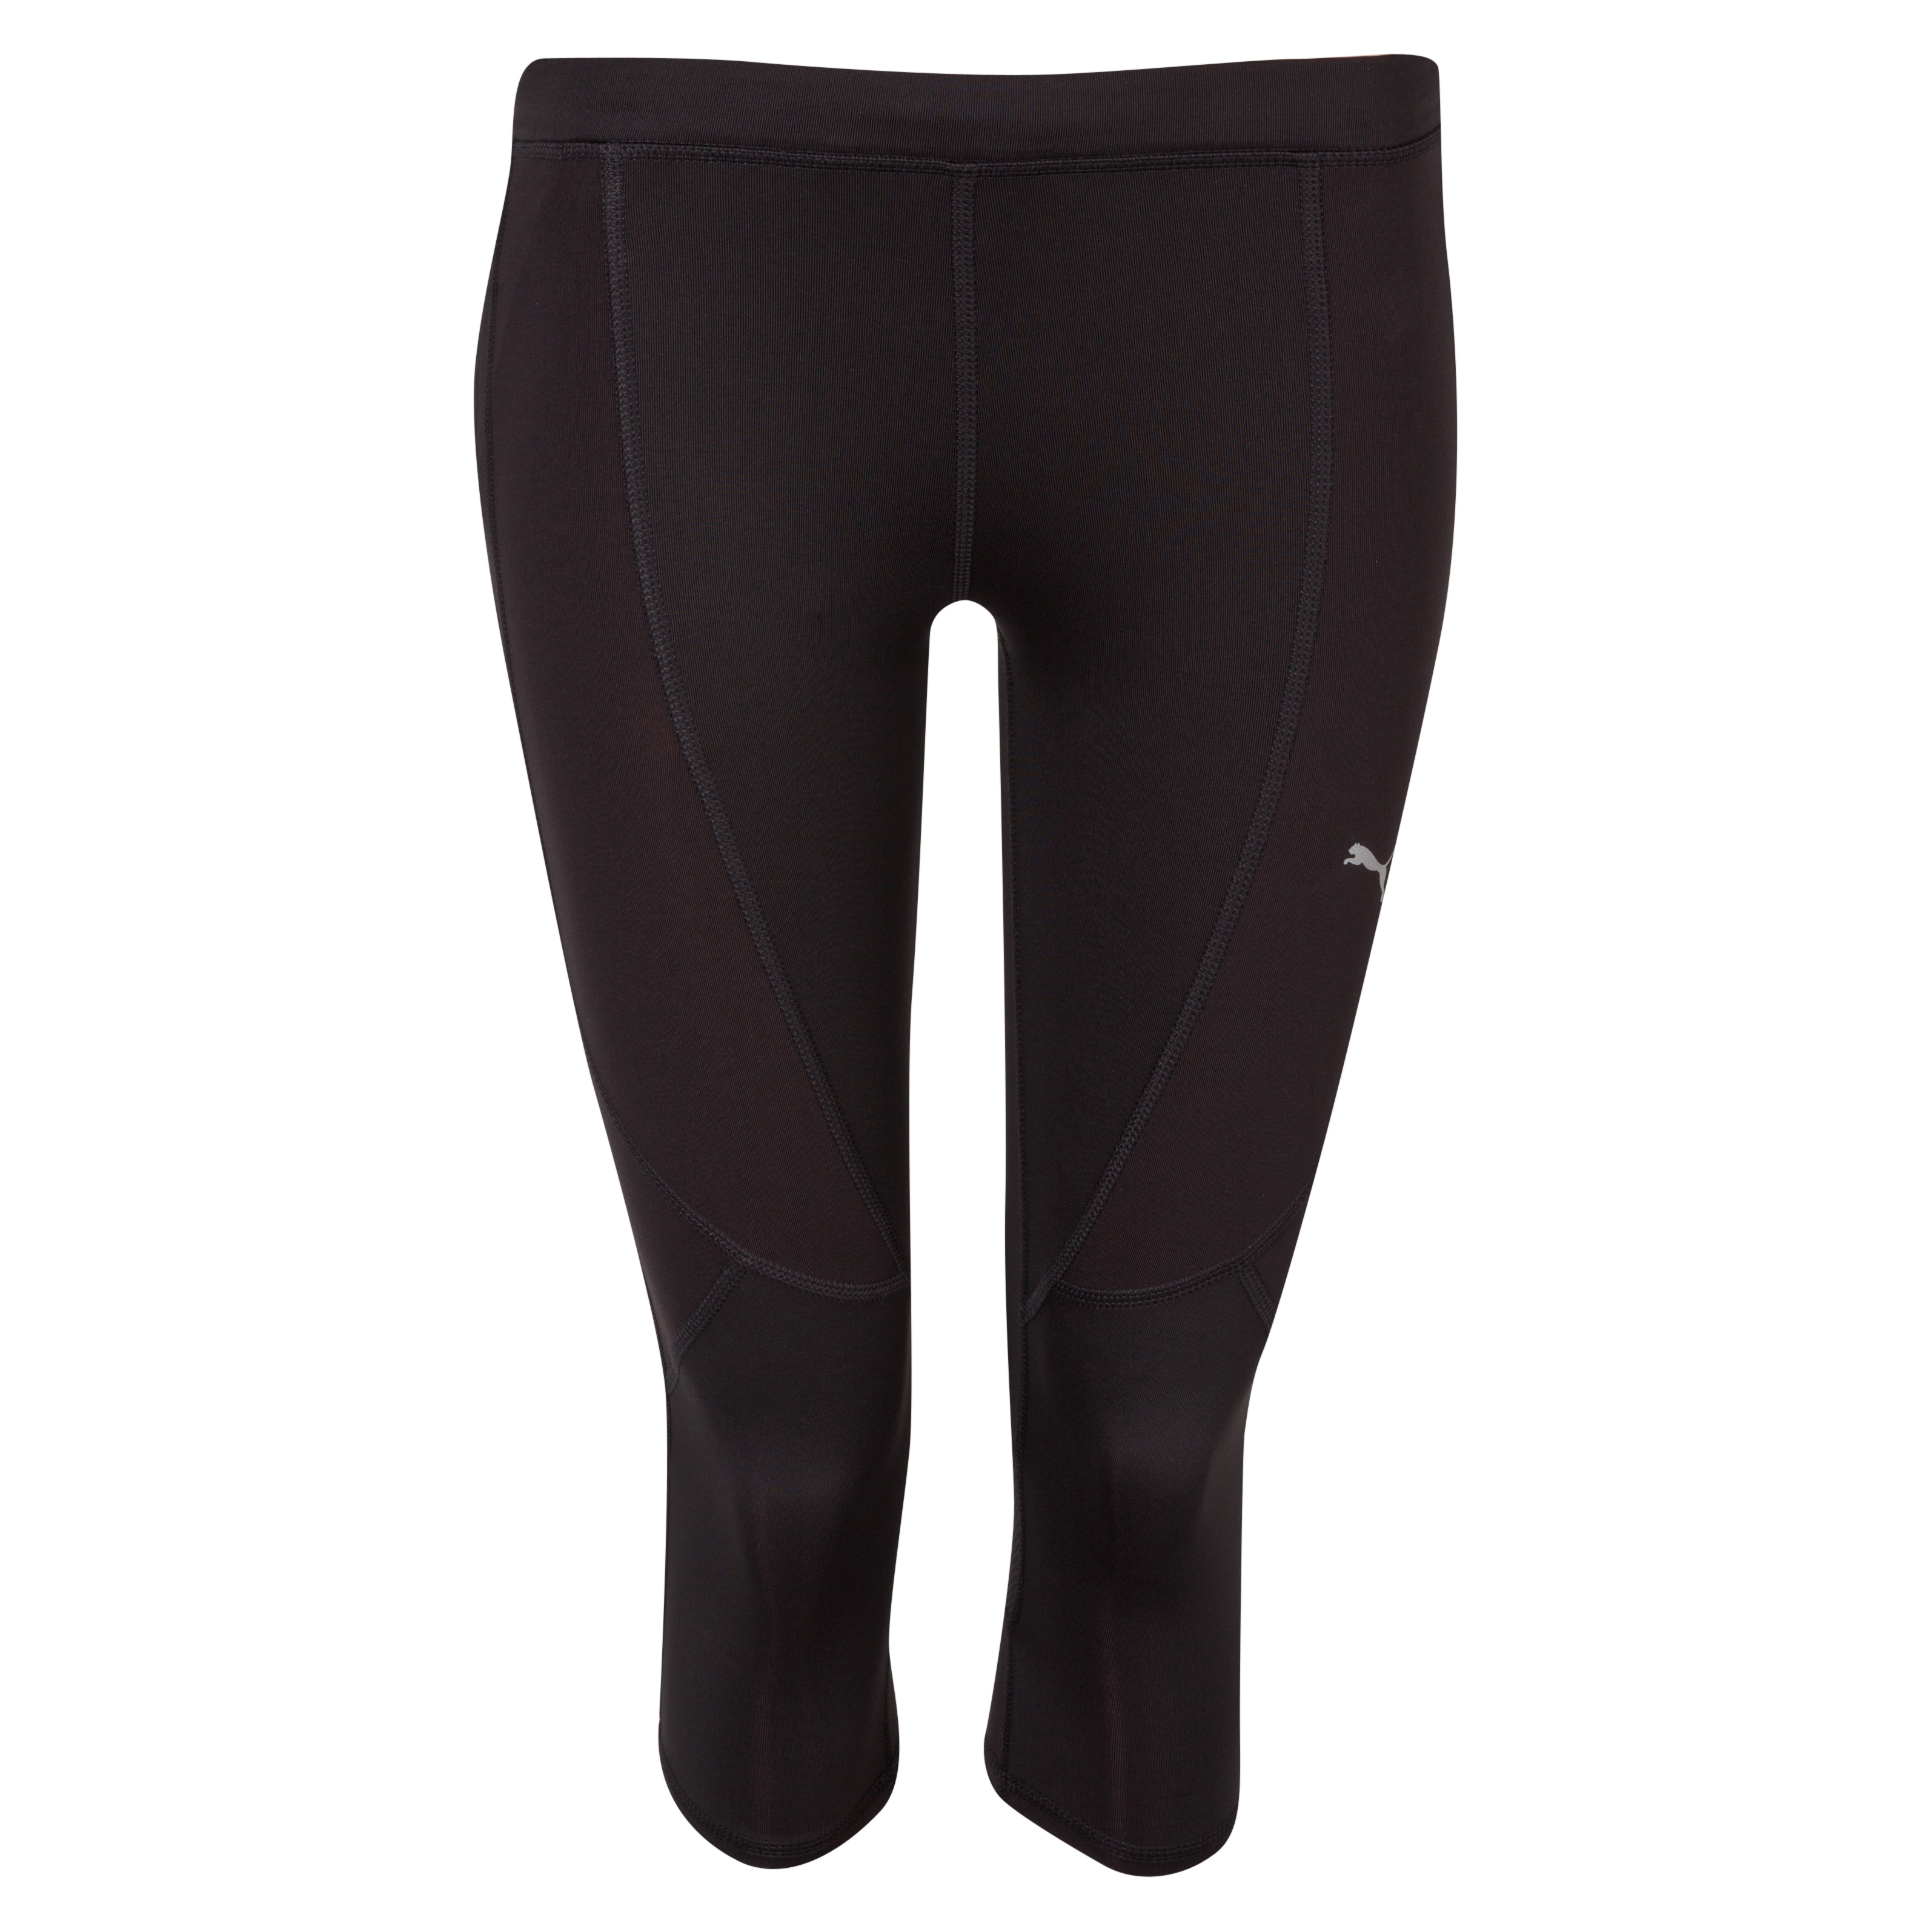 Puma Complete 3/4 Capri Tight - Black - Womens